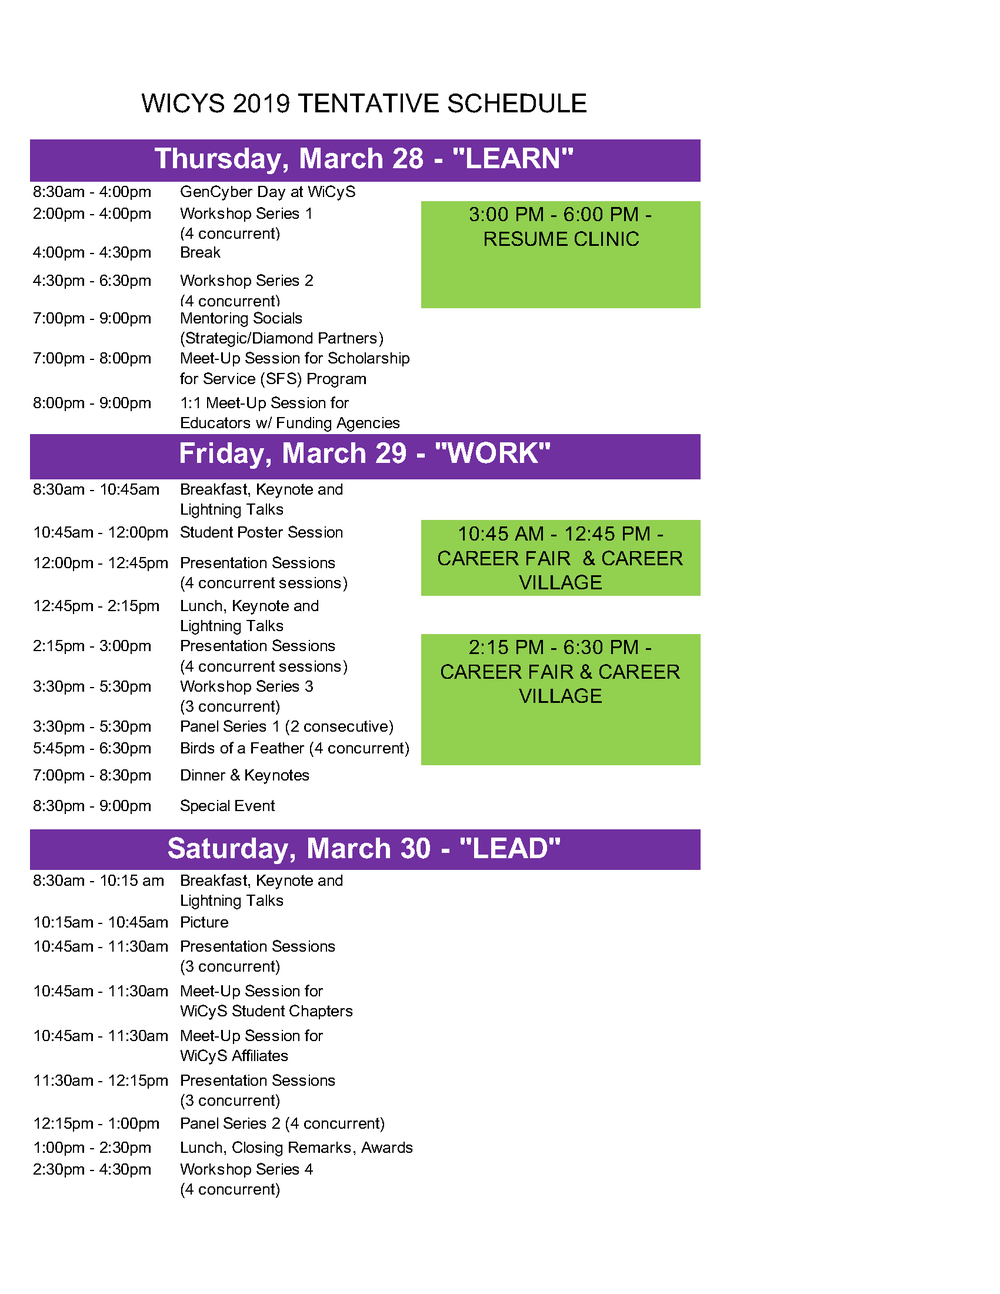 WICYS 2019 Skeleton Schedule as of 2-13-2019.png